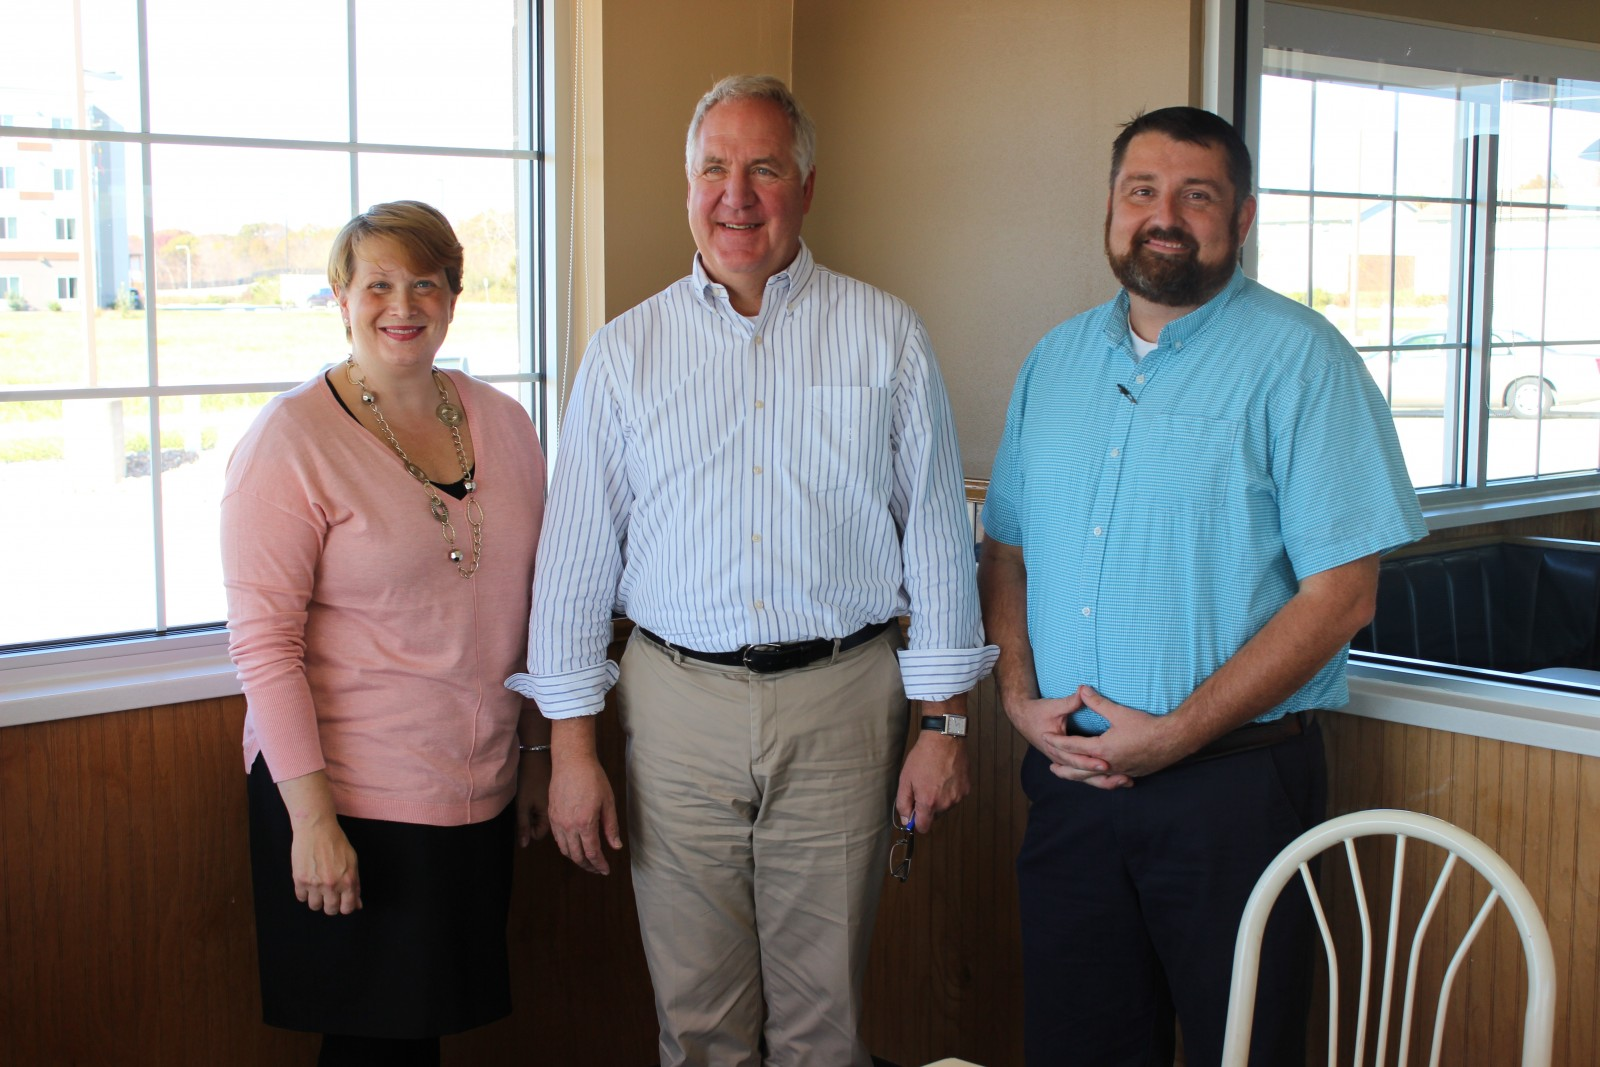 Pictured (L-R) National Association of Restaurants Director of Healthcare Policy Robin Goracke, Congressman John Shimkus (IL-15), and Culver's Co-Owner Chris Debolt